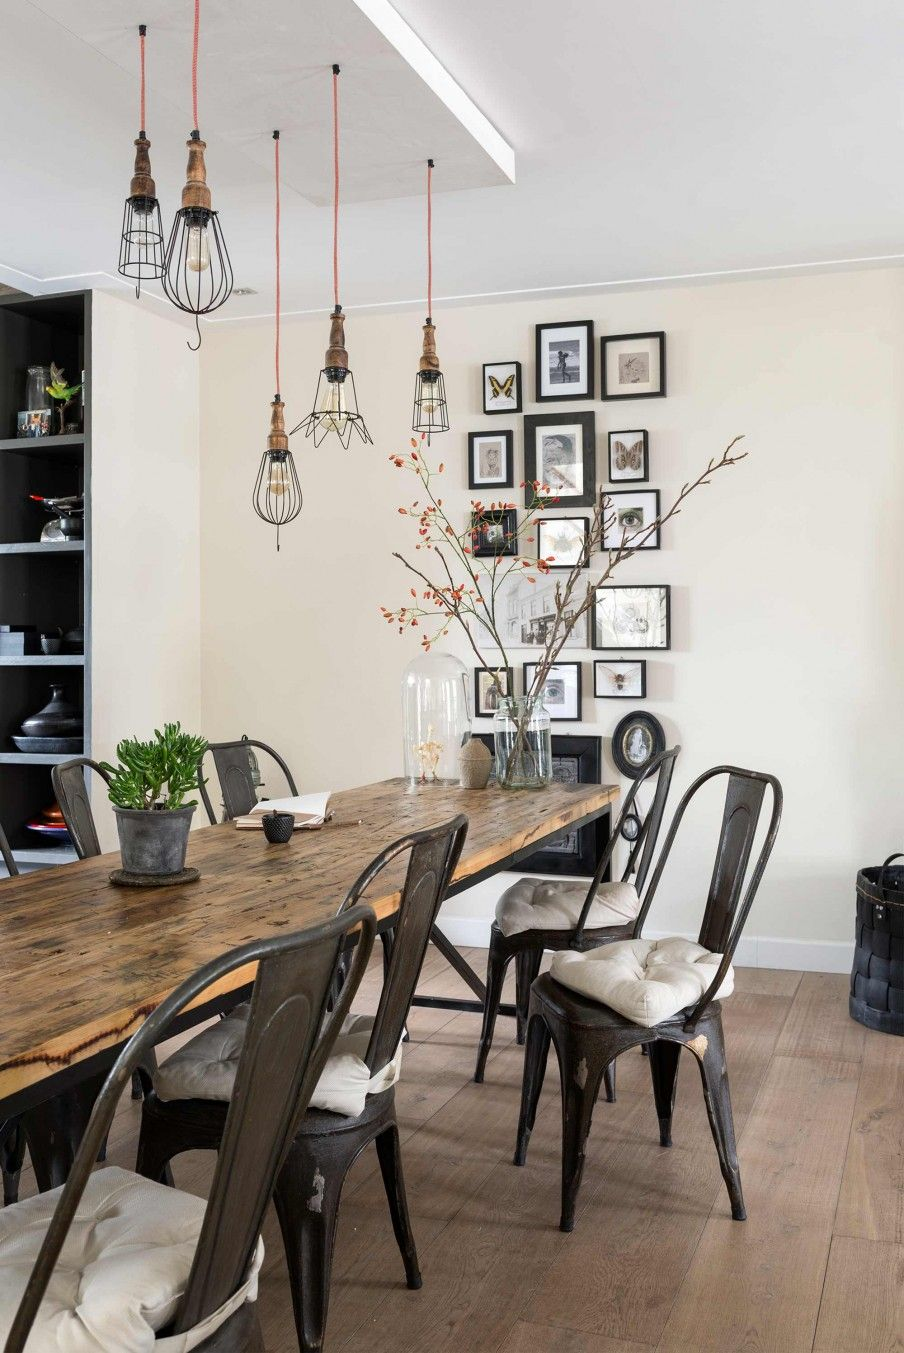 A Warm Family Home In Breda The Netherlands Dining Room Design